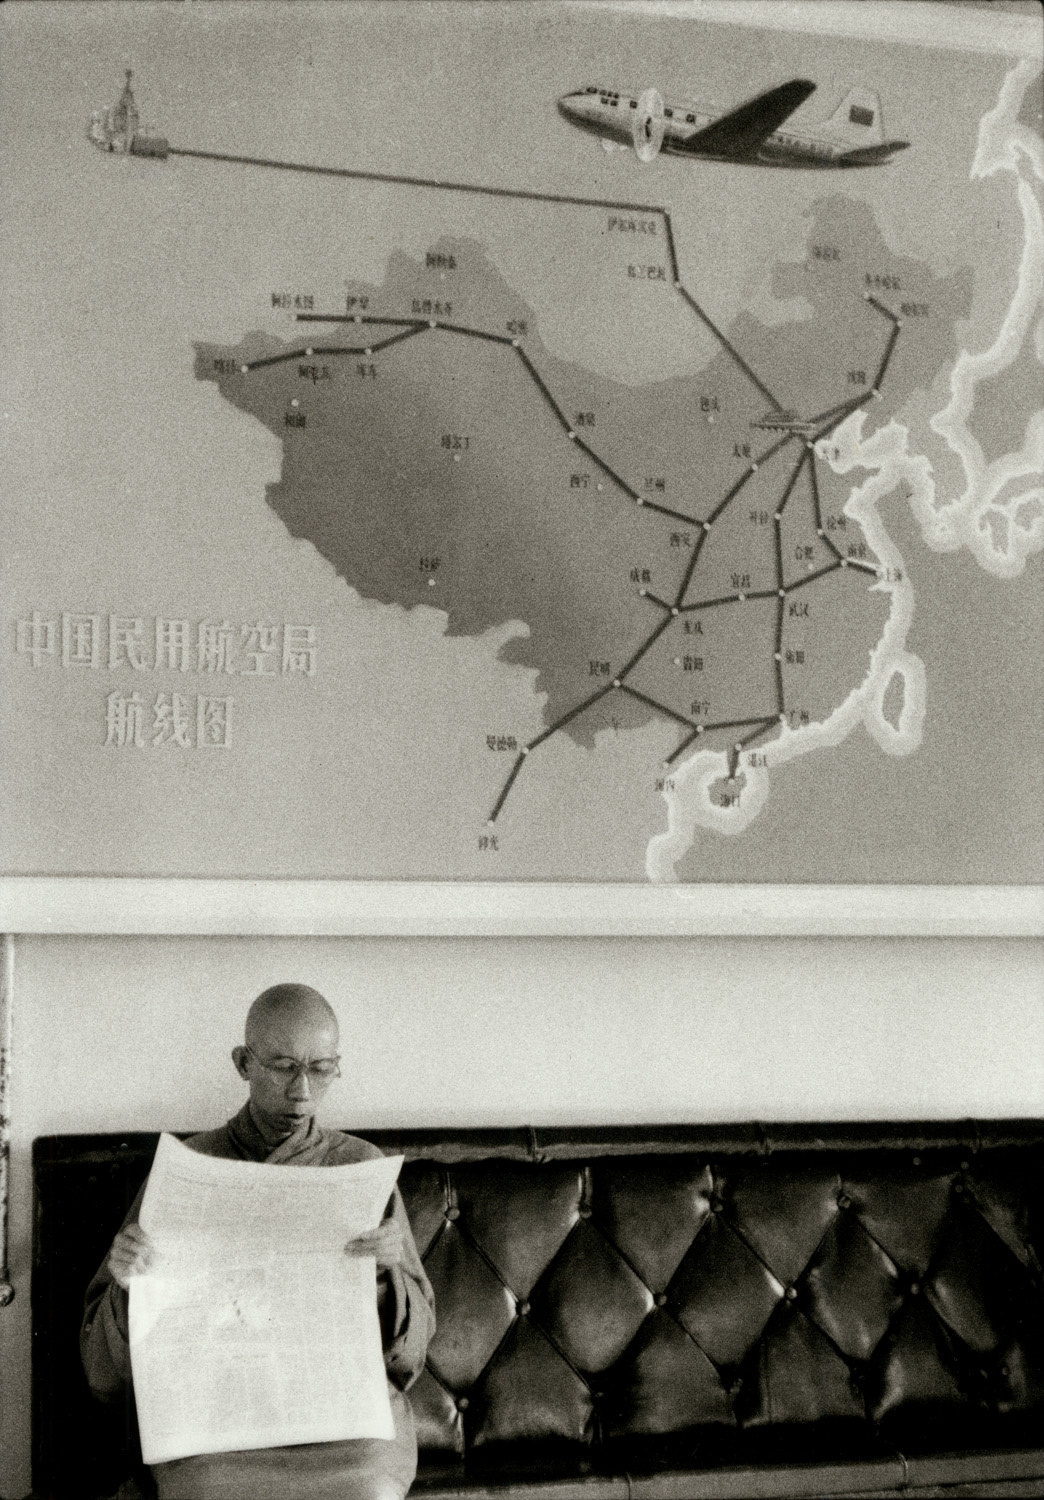 A Buddhist monk waits under a Peking-Moscow airline poster at Peking airport. China, August 1956. (RDH C147-04)